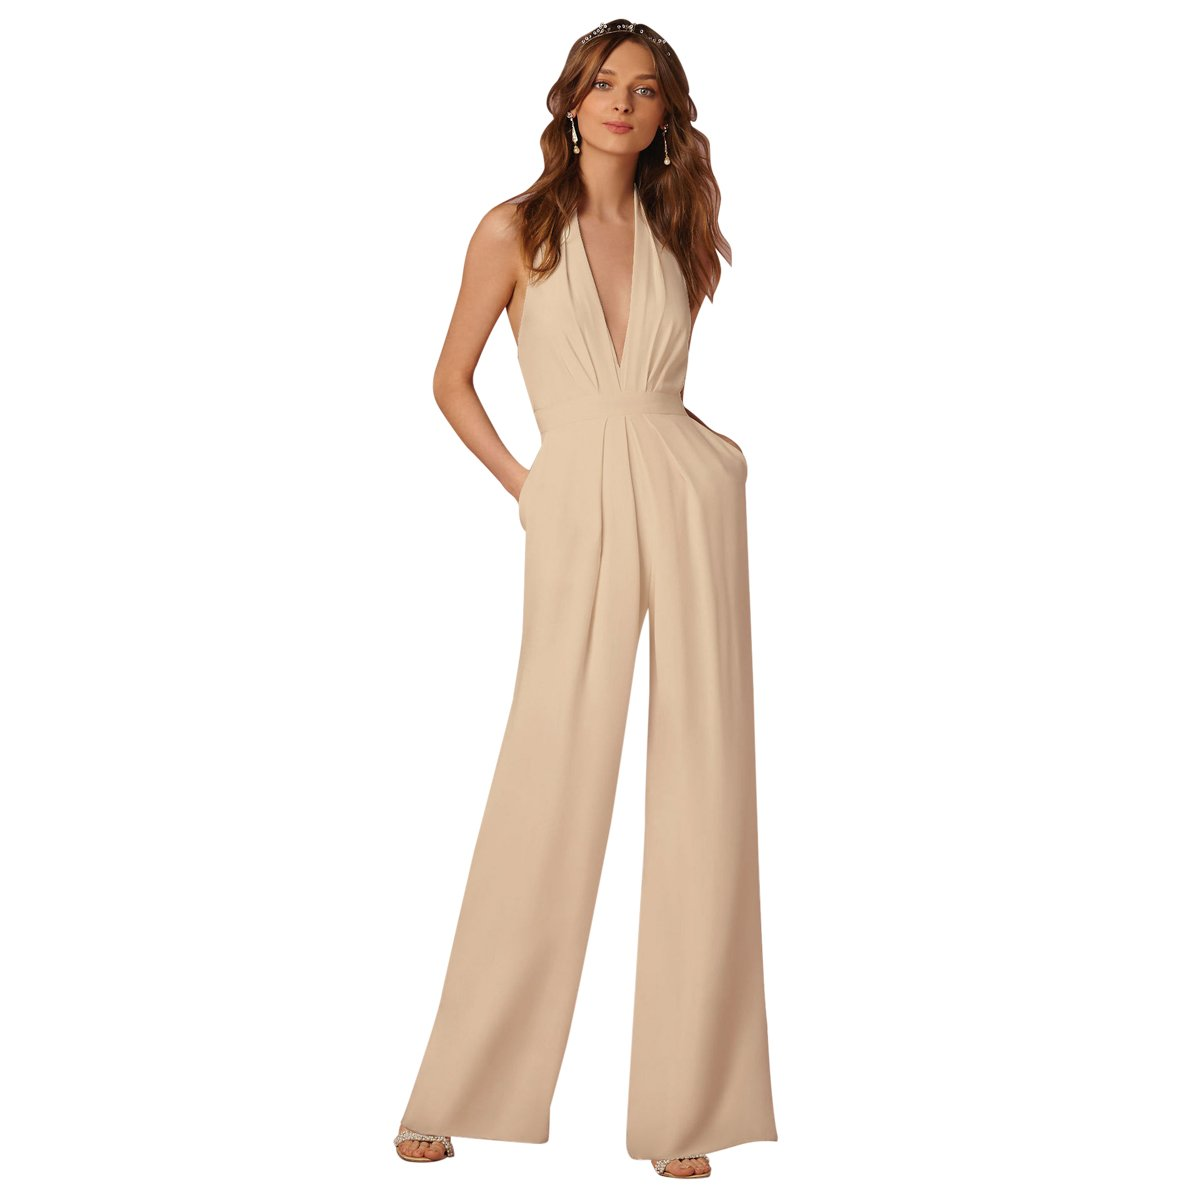 b9df3dc93734 Amazon.com  IBTOM CASTLE Women s Sexy High Waisted Jumpsuits V-NeckHalter  Wide Leg Long Pants Wedding Rompers Overalls Pockets  Clothing